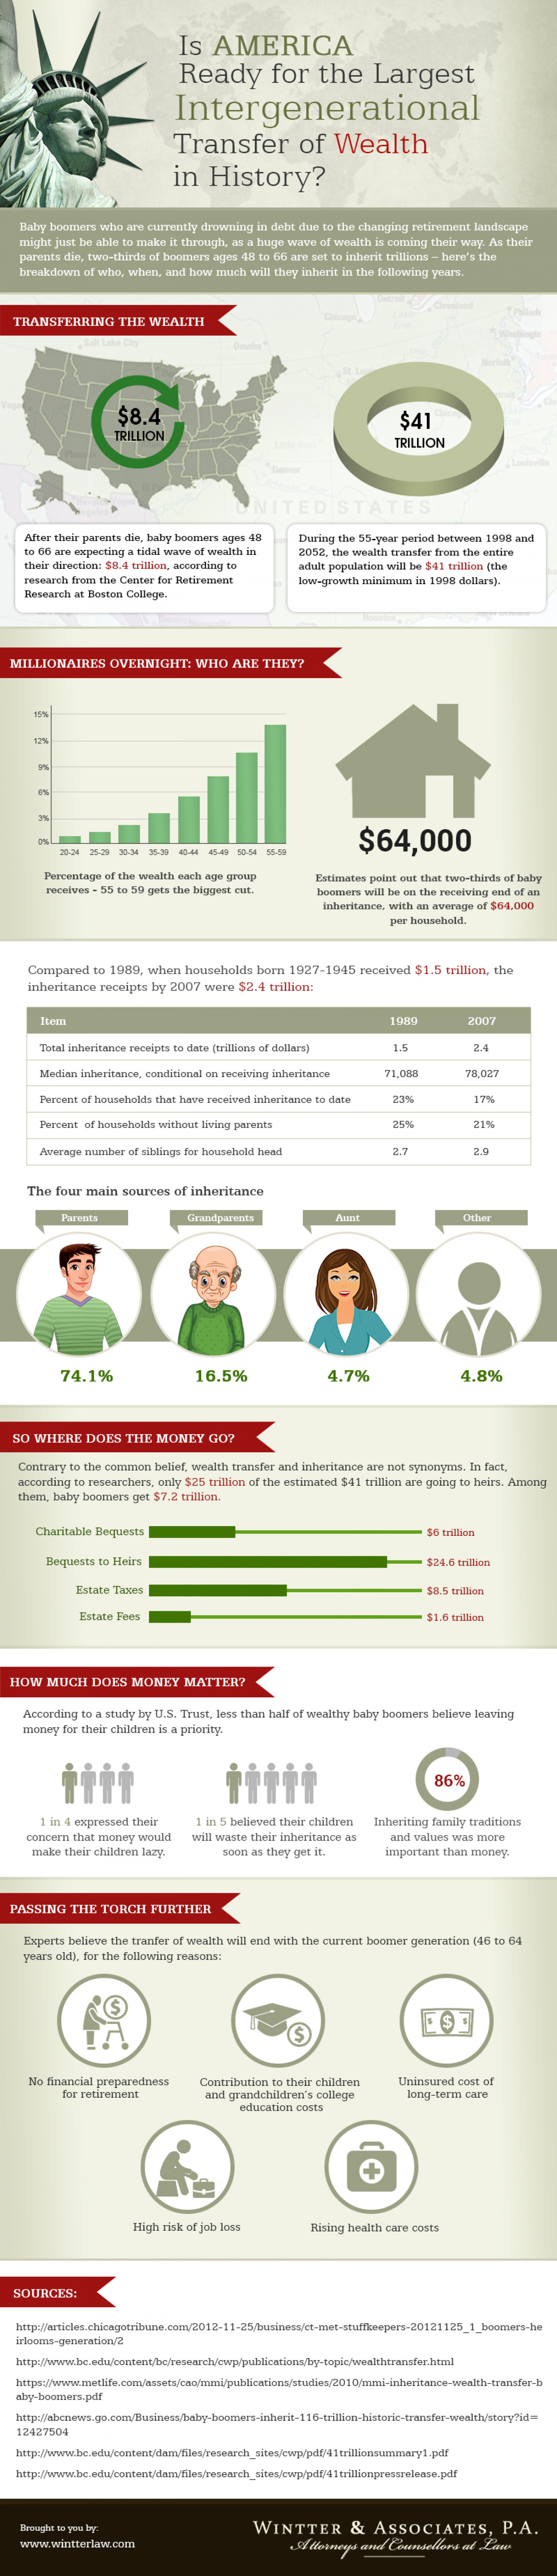 Is America Ready for the Largest Intergenerational Transfer of Wealth in History? Infographic